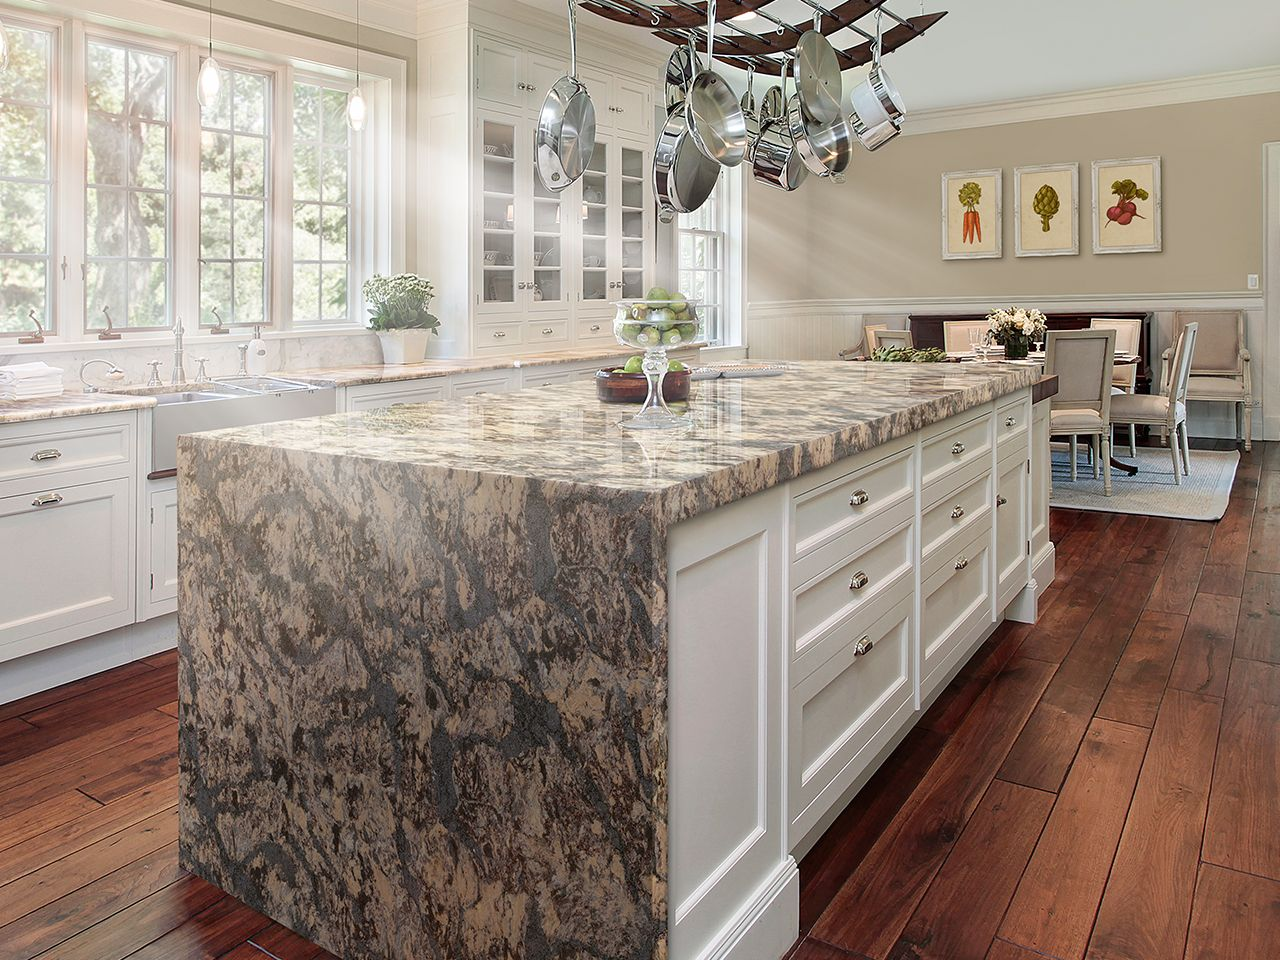 cambria - quartz stone surfaces - advantages of cambria quatz